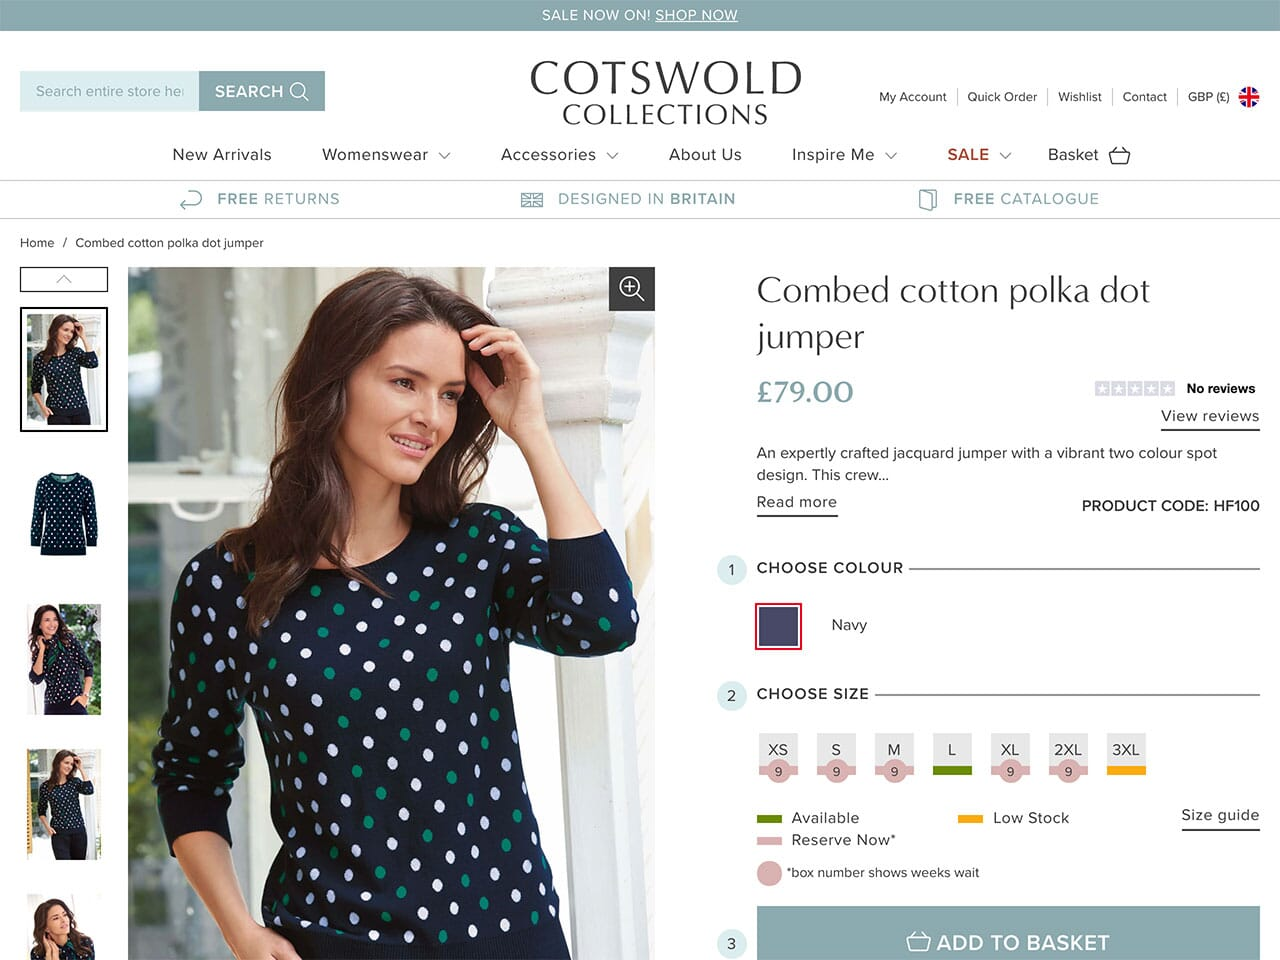 cotswold-collections-image-gallery